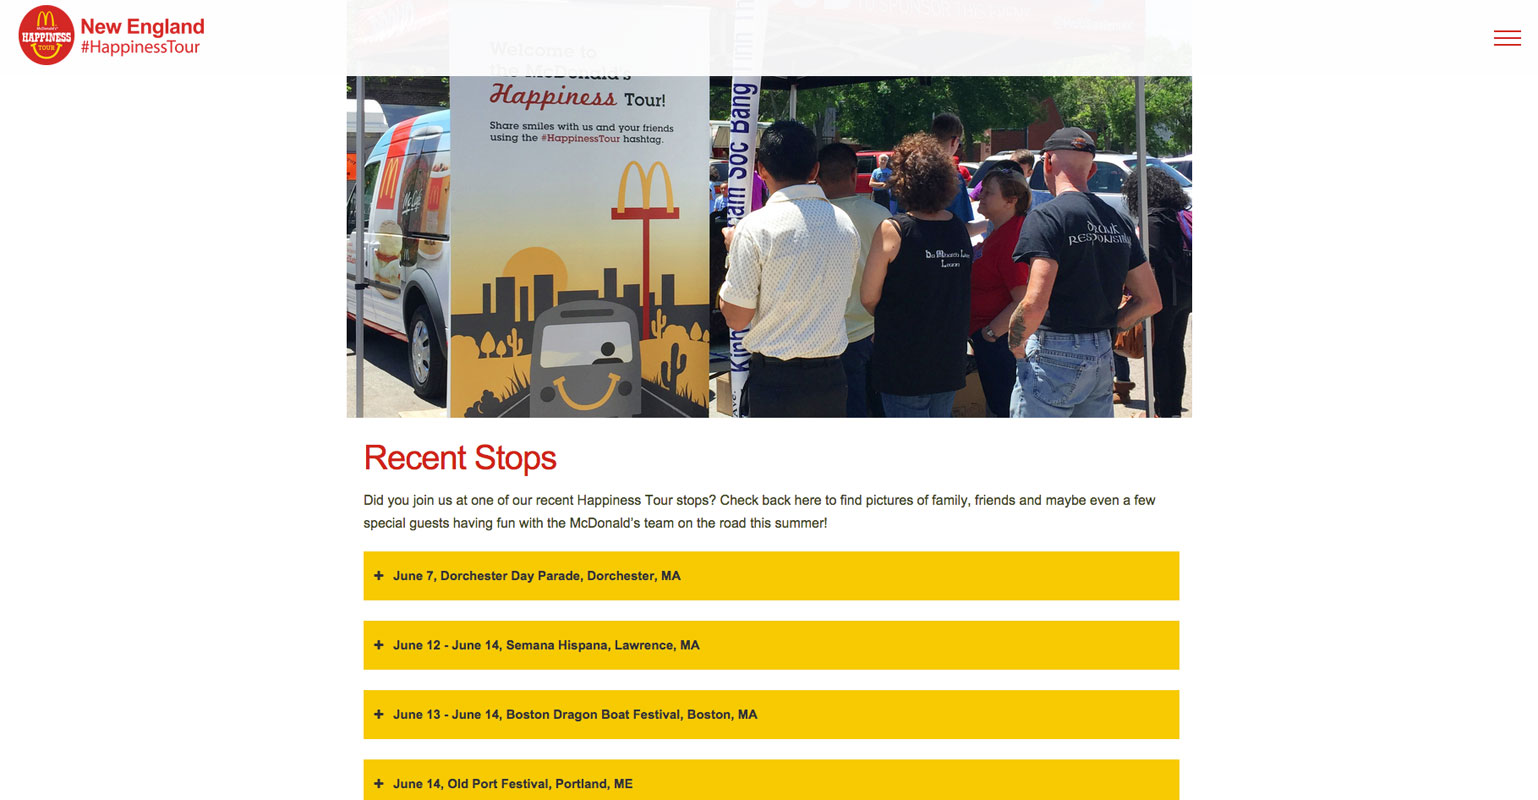 McDonalds's Happiness Tour - Recent Stops